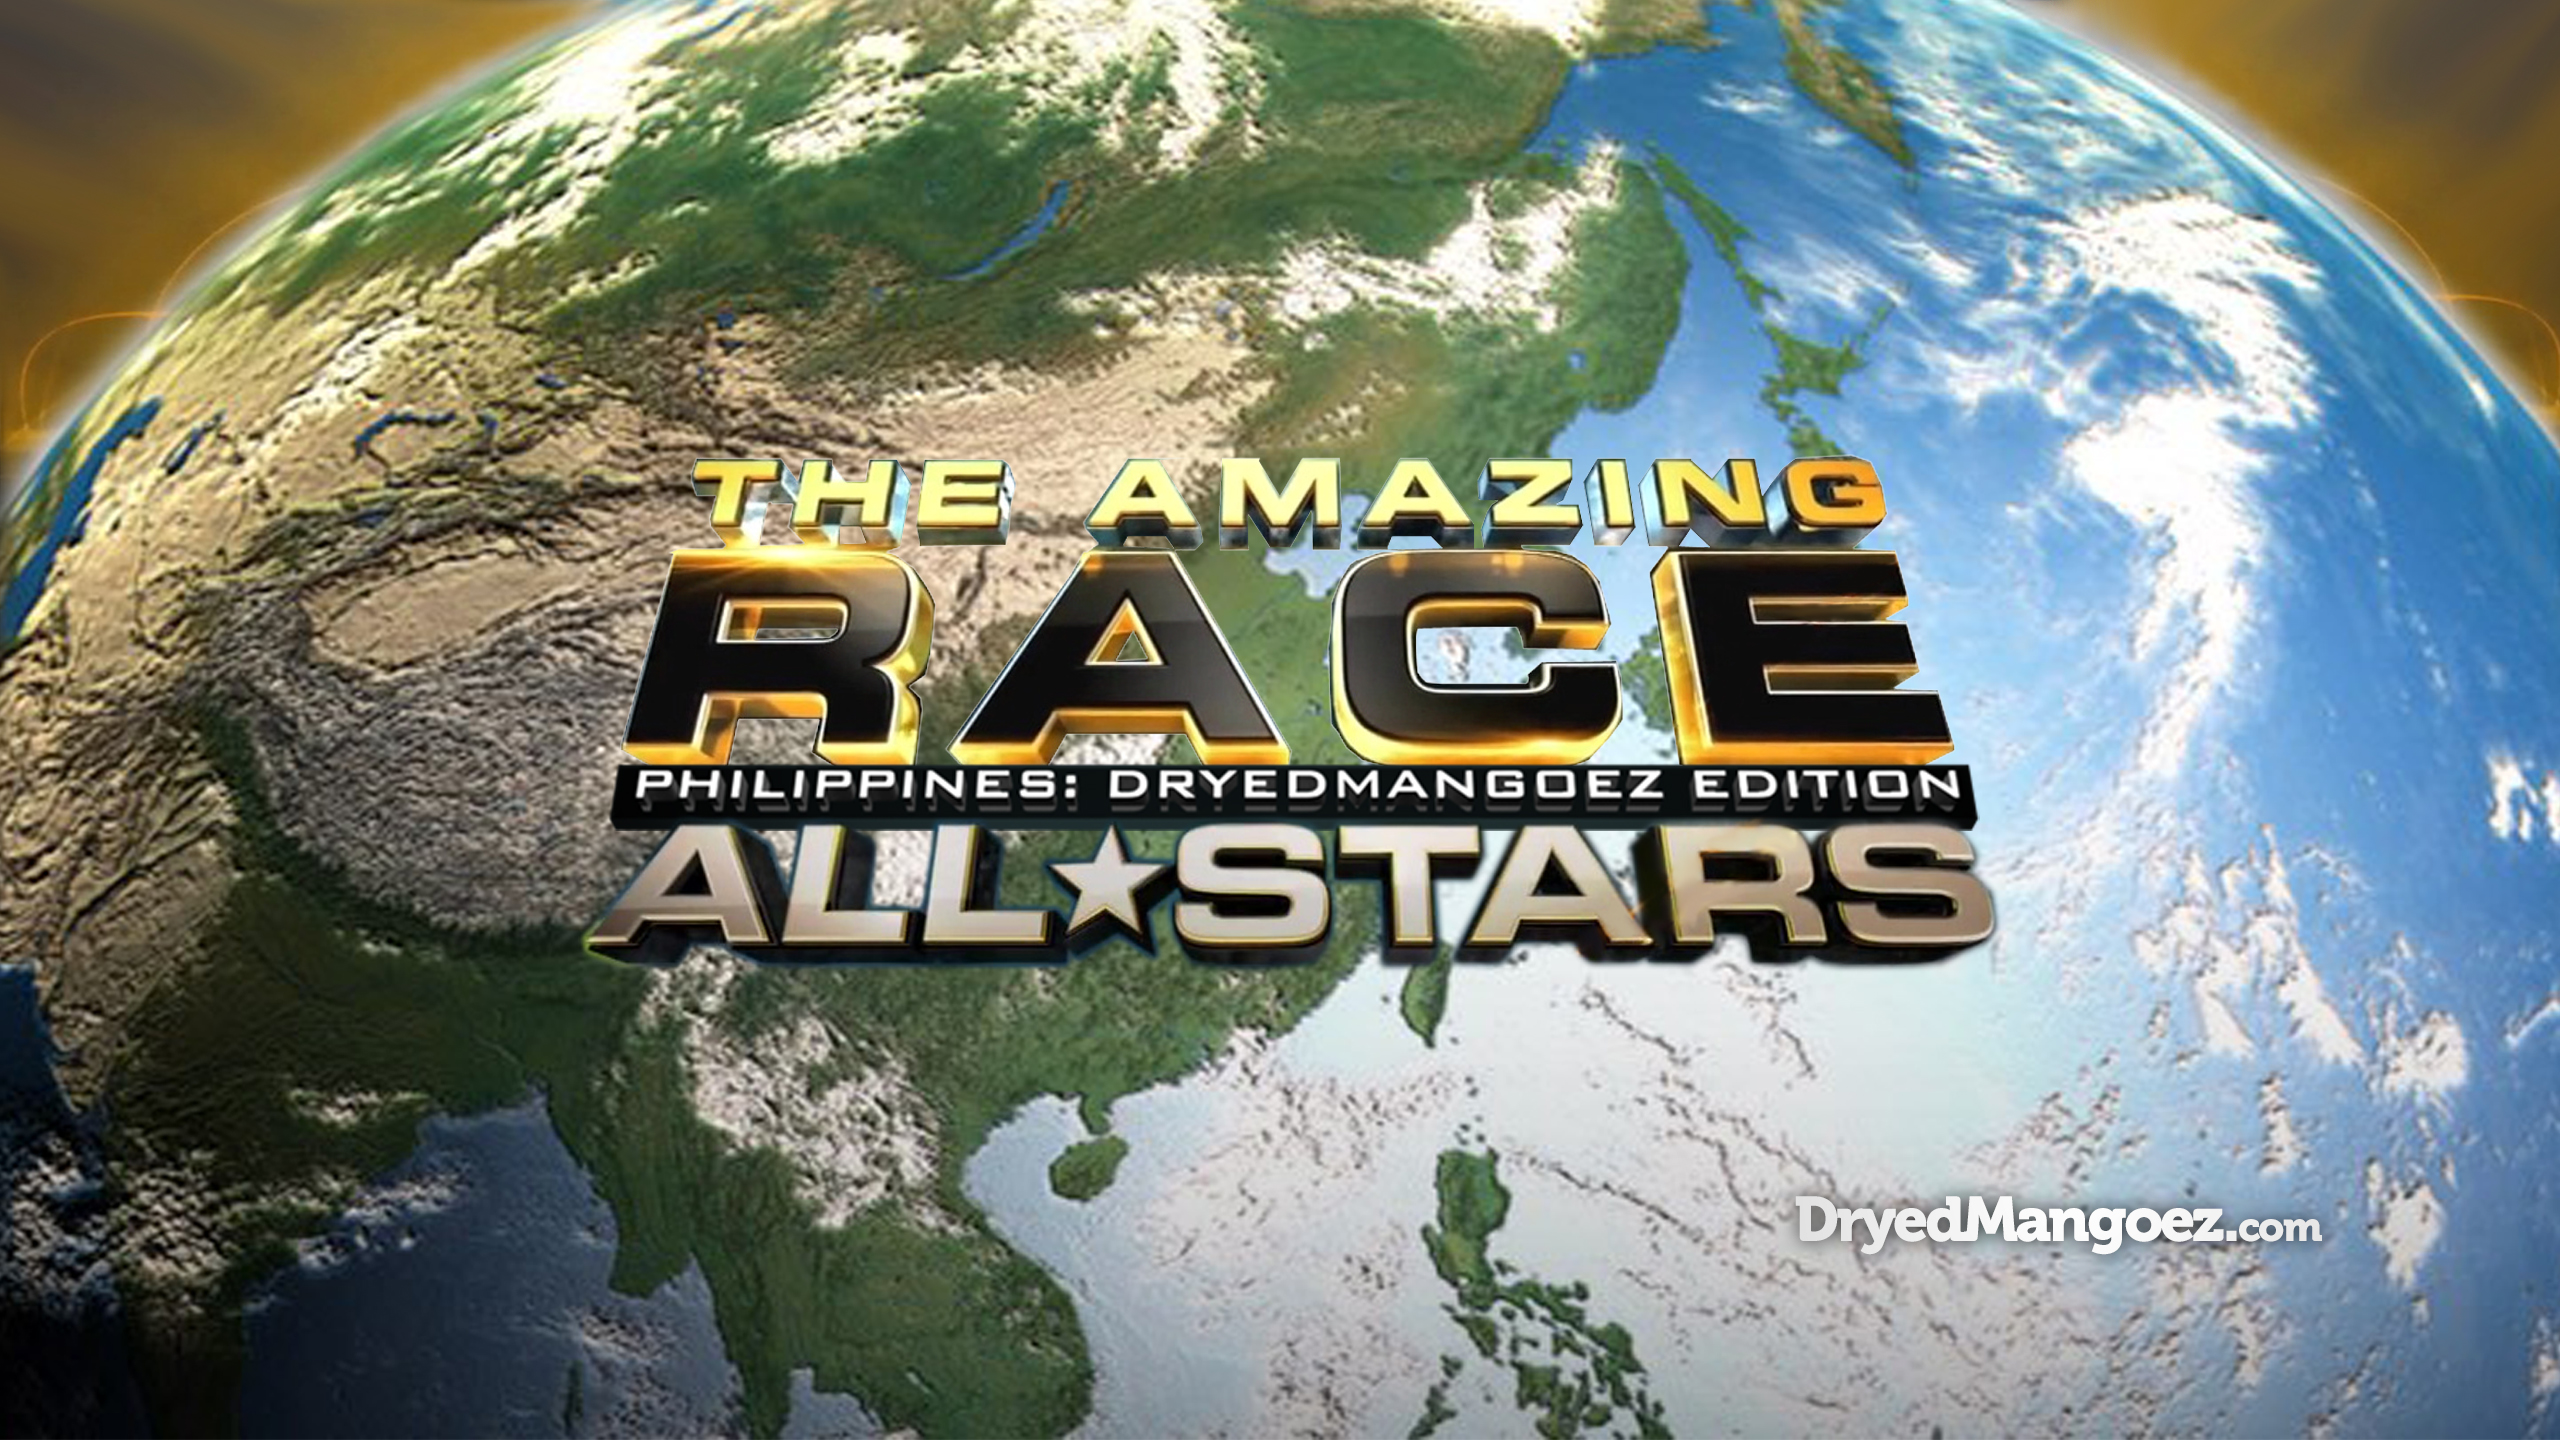 The Amazing Race Philippines: DryedMangoez Edition All-Stars (Season 19)